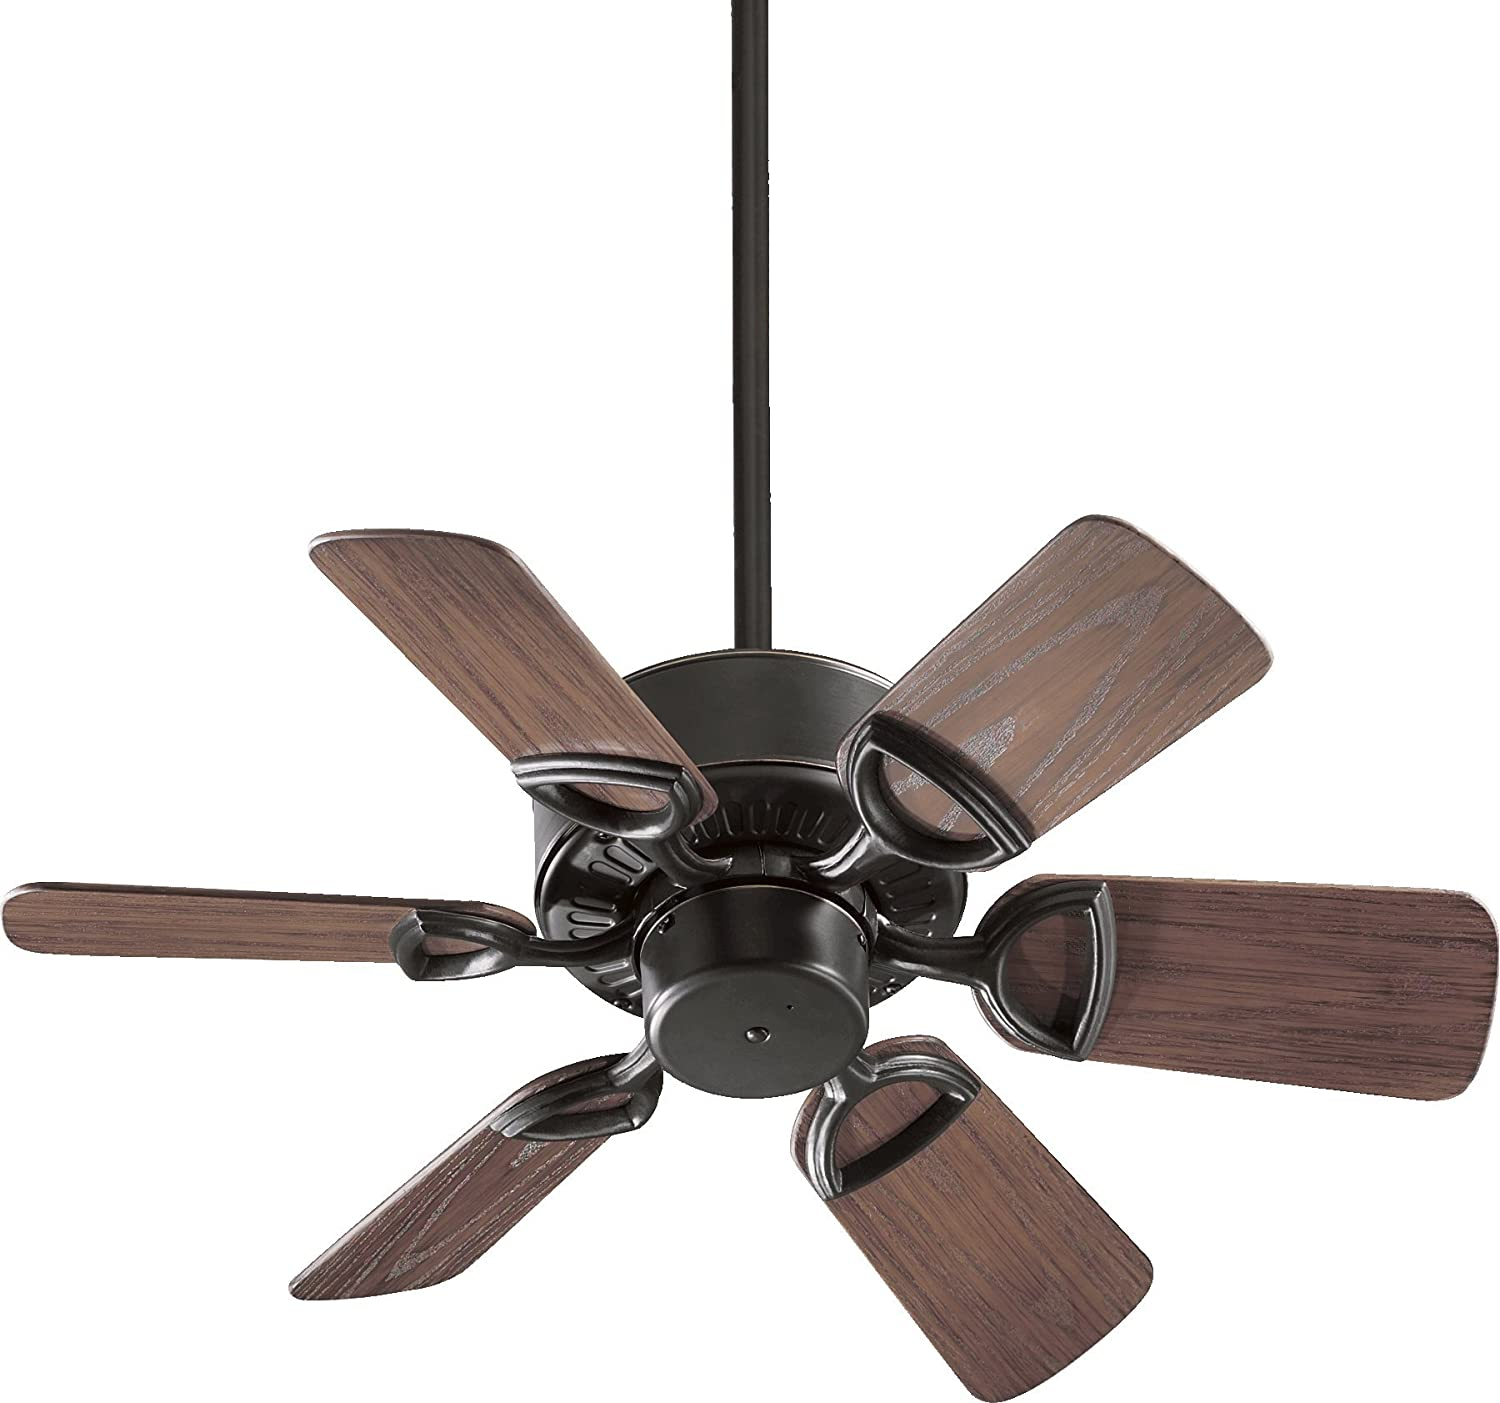 Quorum International 143306 95 Estate 6 Blade Patio Ceiling Fan With Walnut  ABS Blades, 30 Inch, Old World Finish     Amazon.com